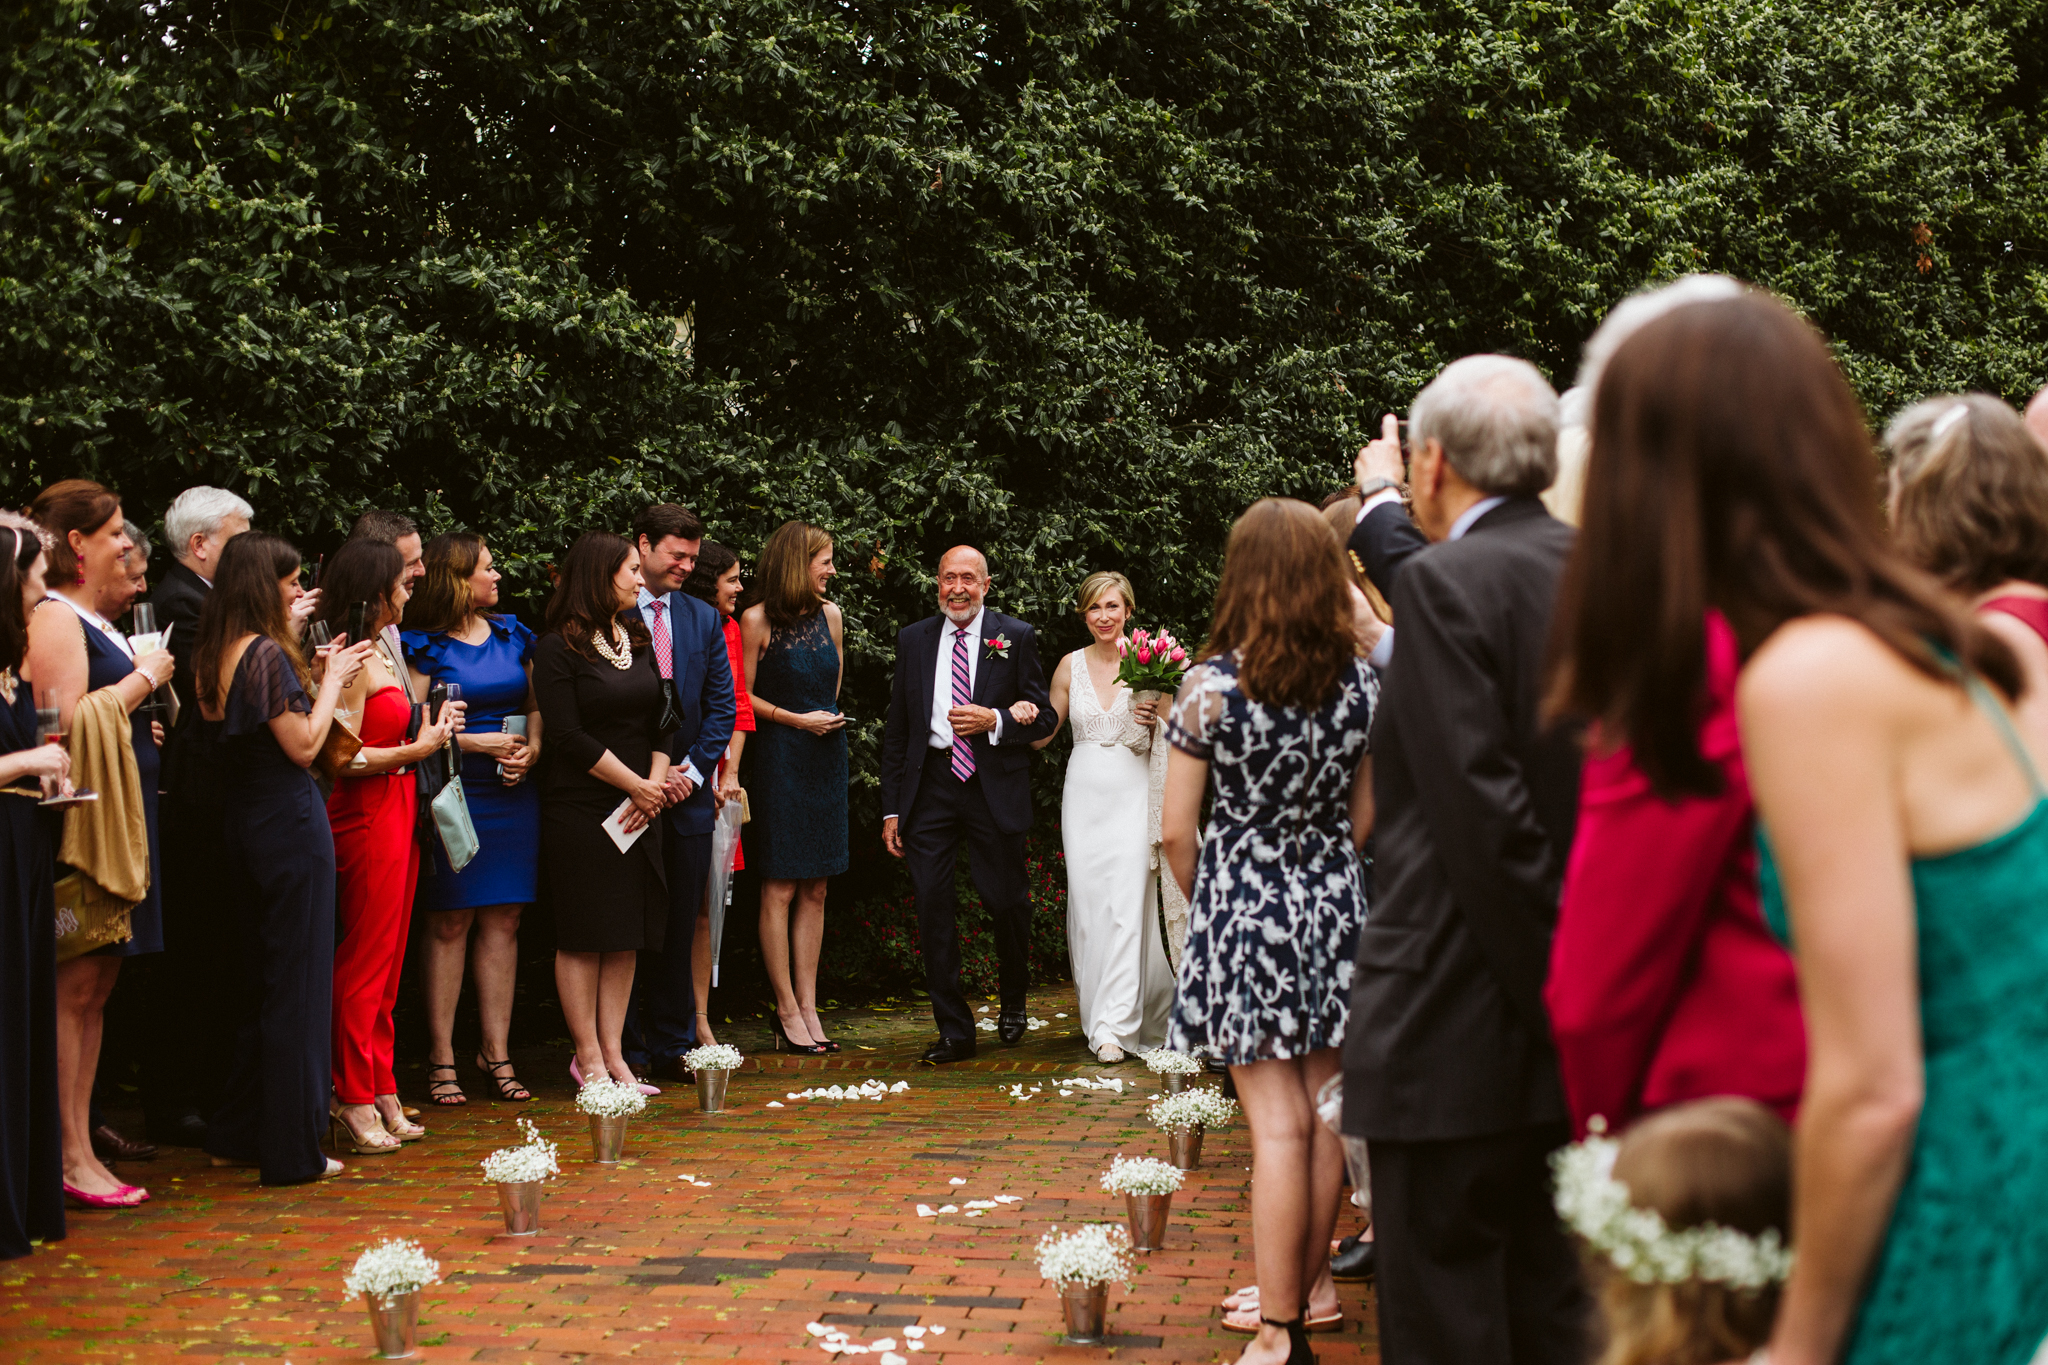 cook_wedding_richmond_virginia_rebecca_burt_photography-27.jpg